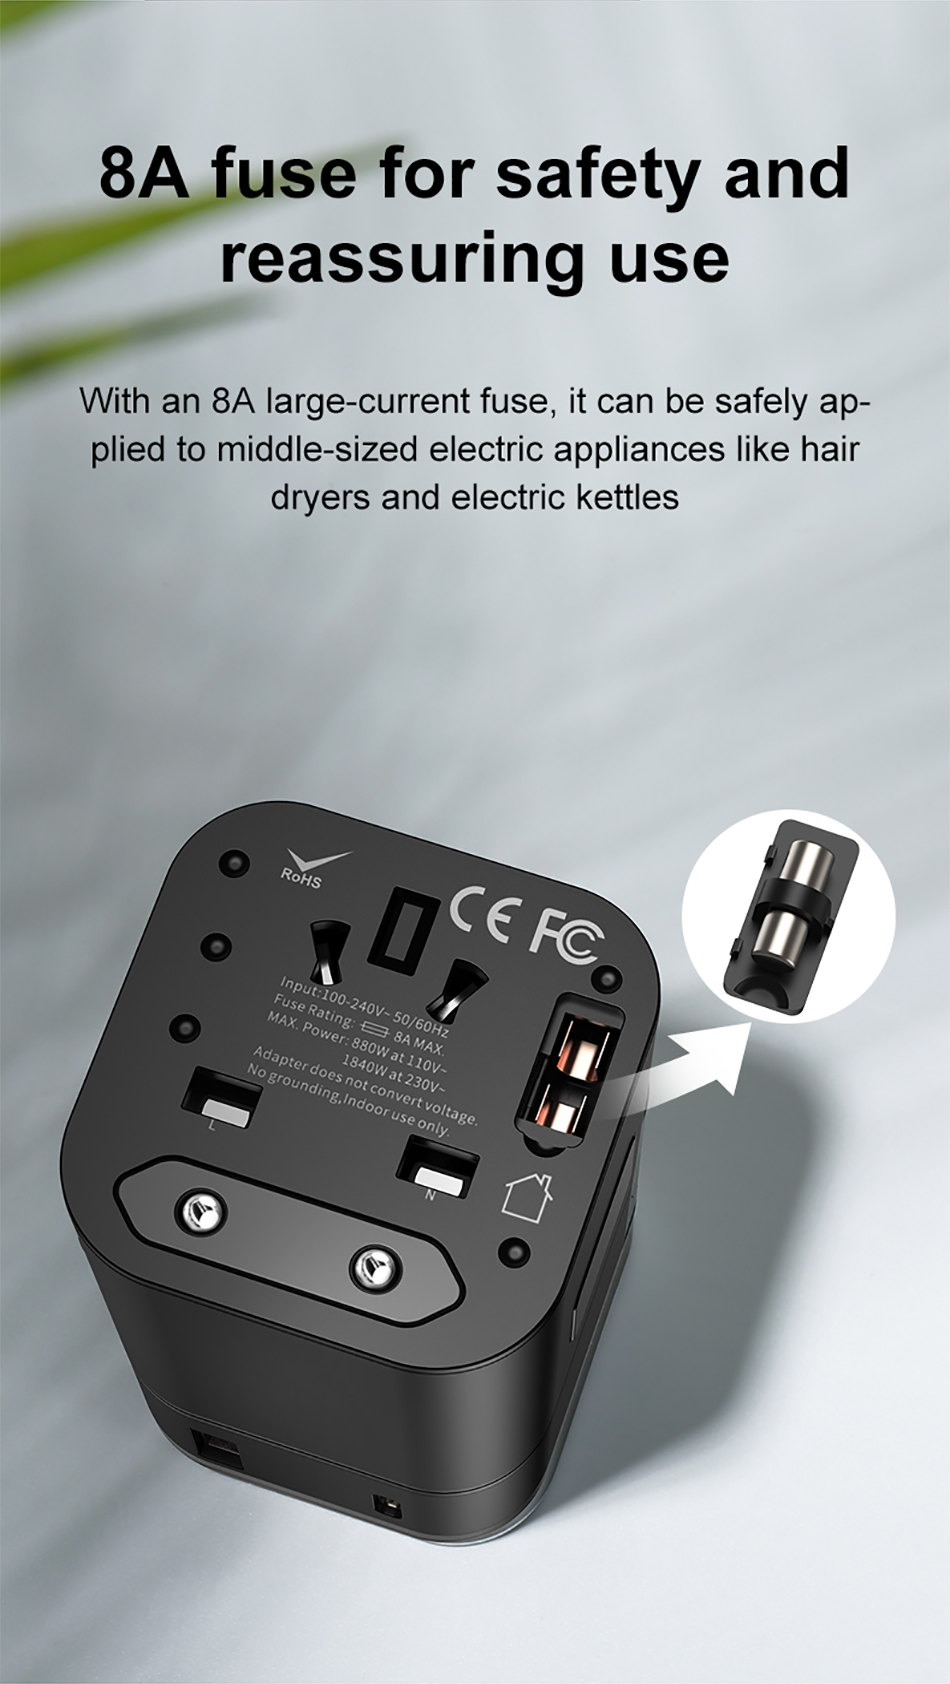 baseus 2-in-1 global conversion charger price